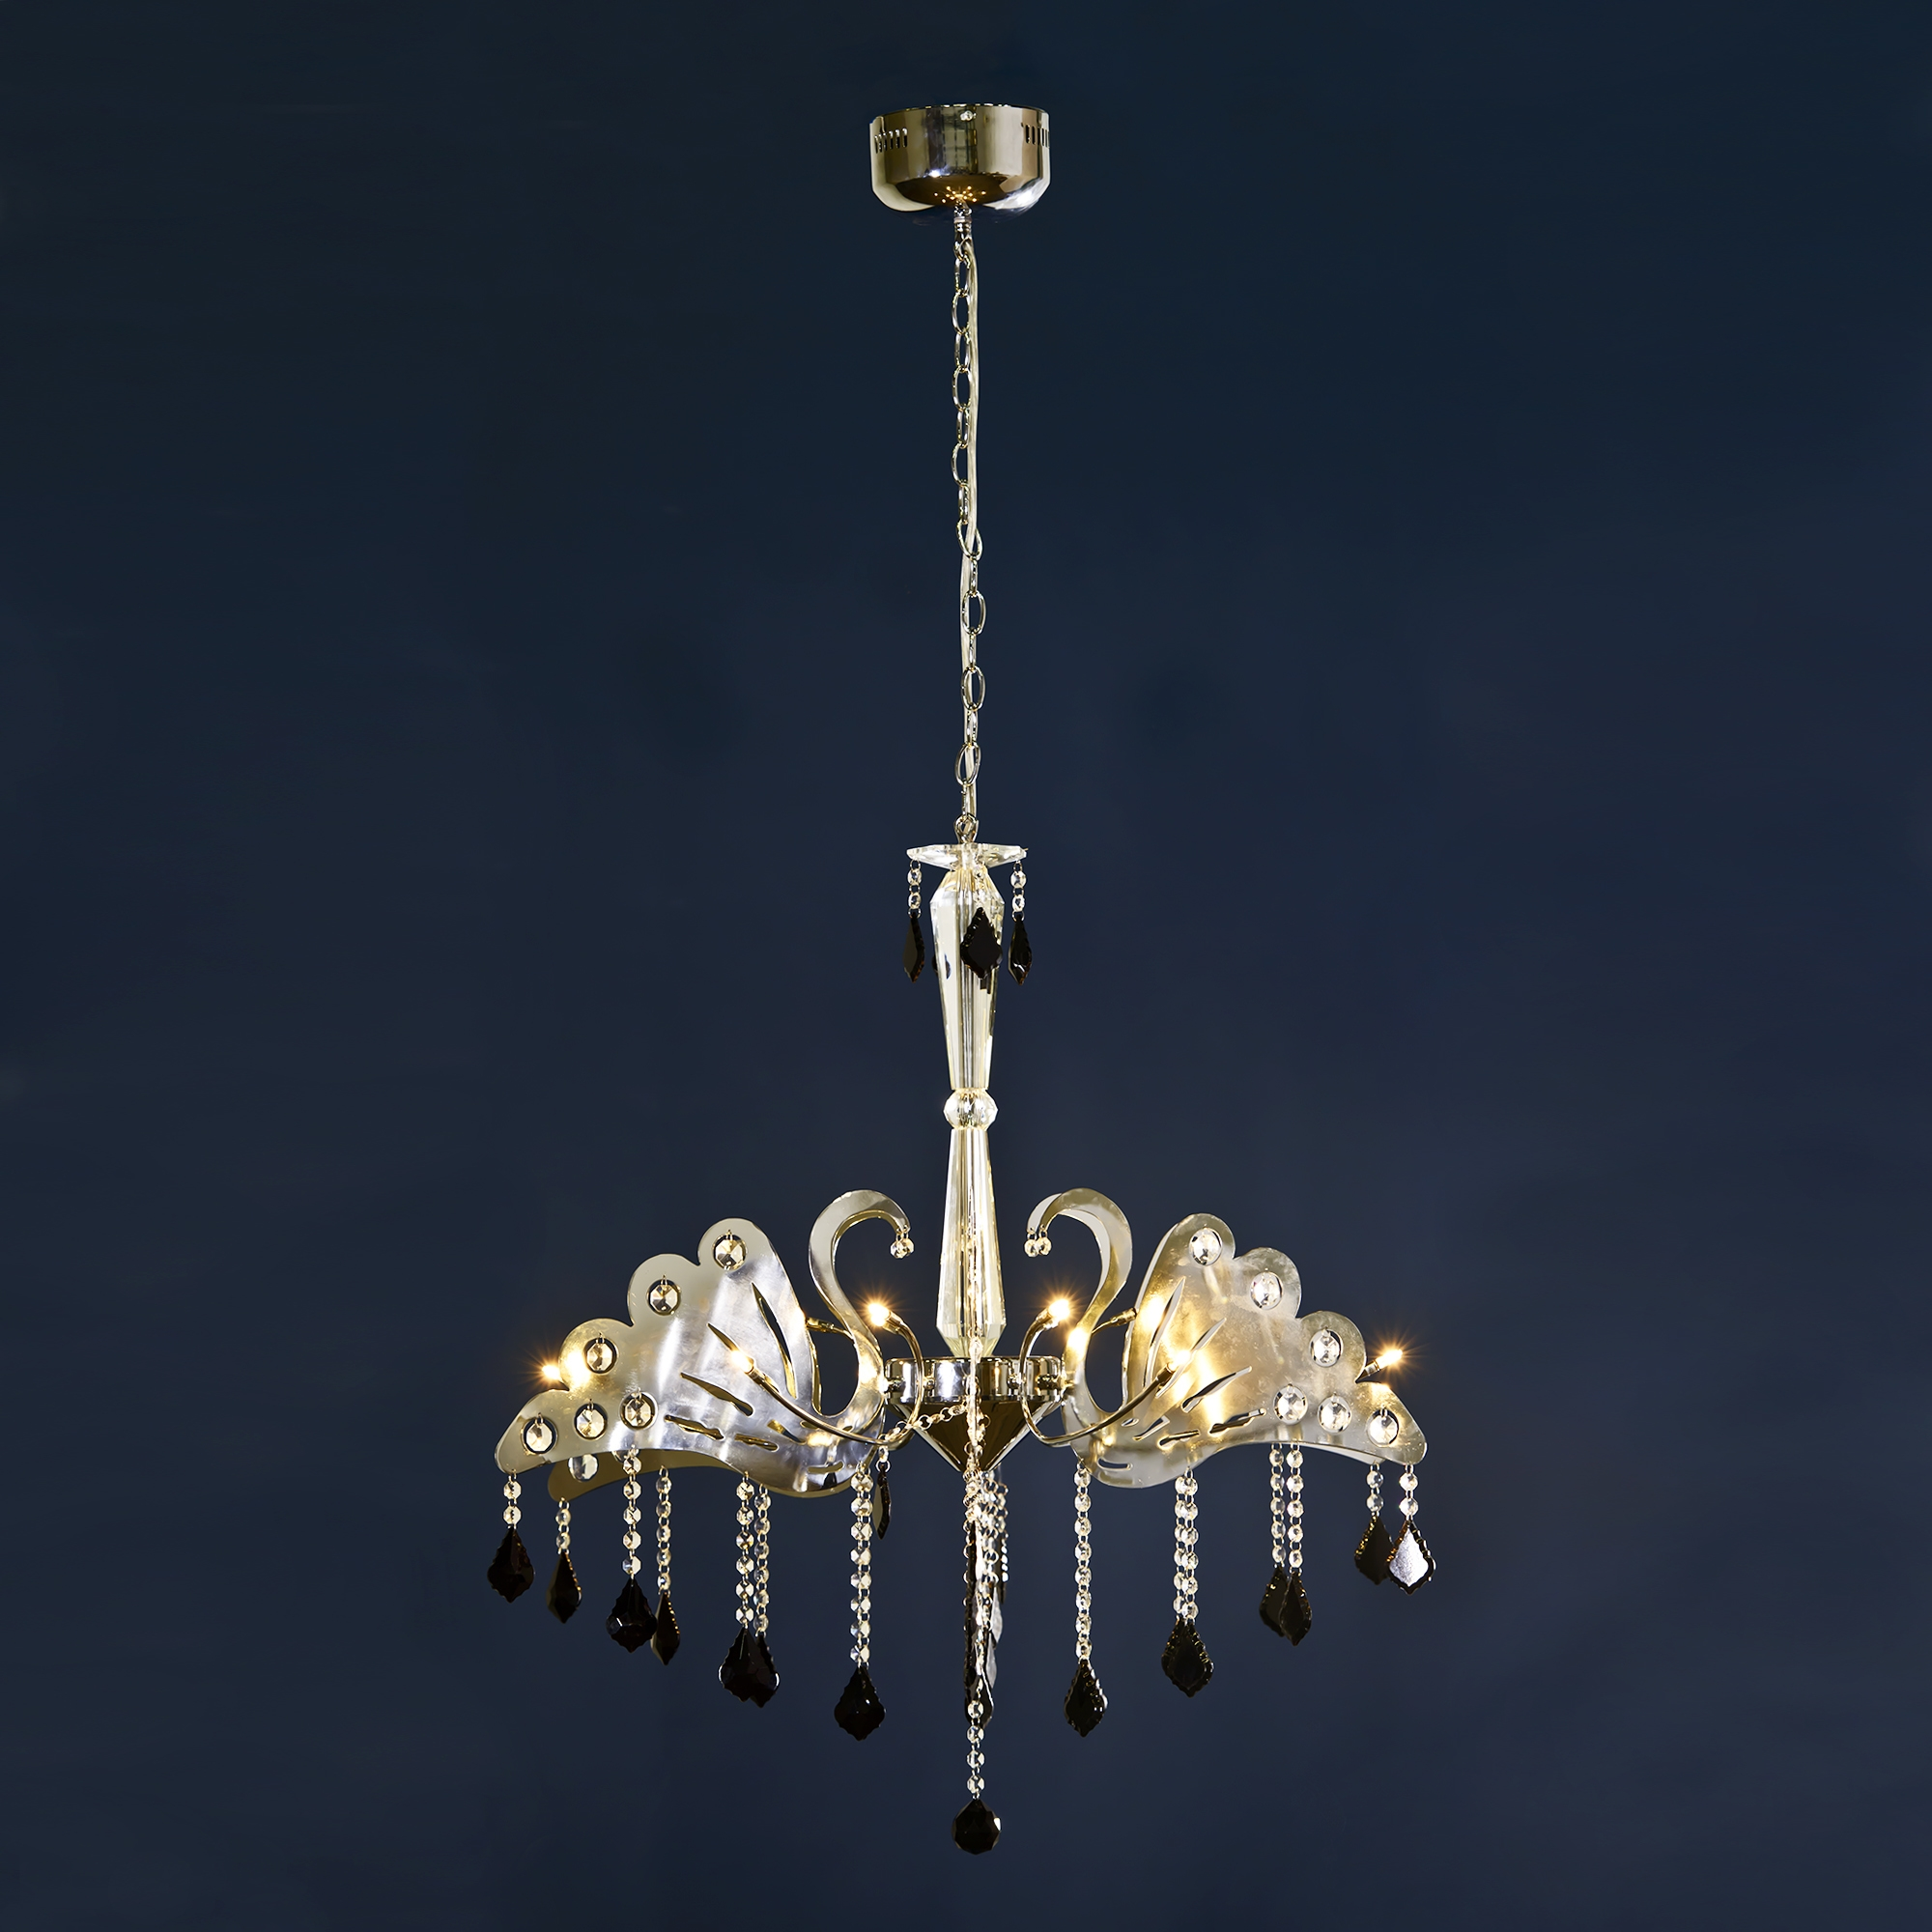 Swan Chandelier Light - Chrome, Black and Clear